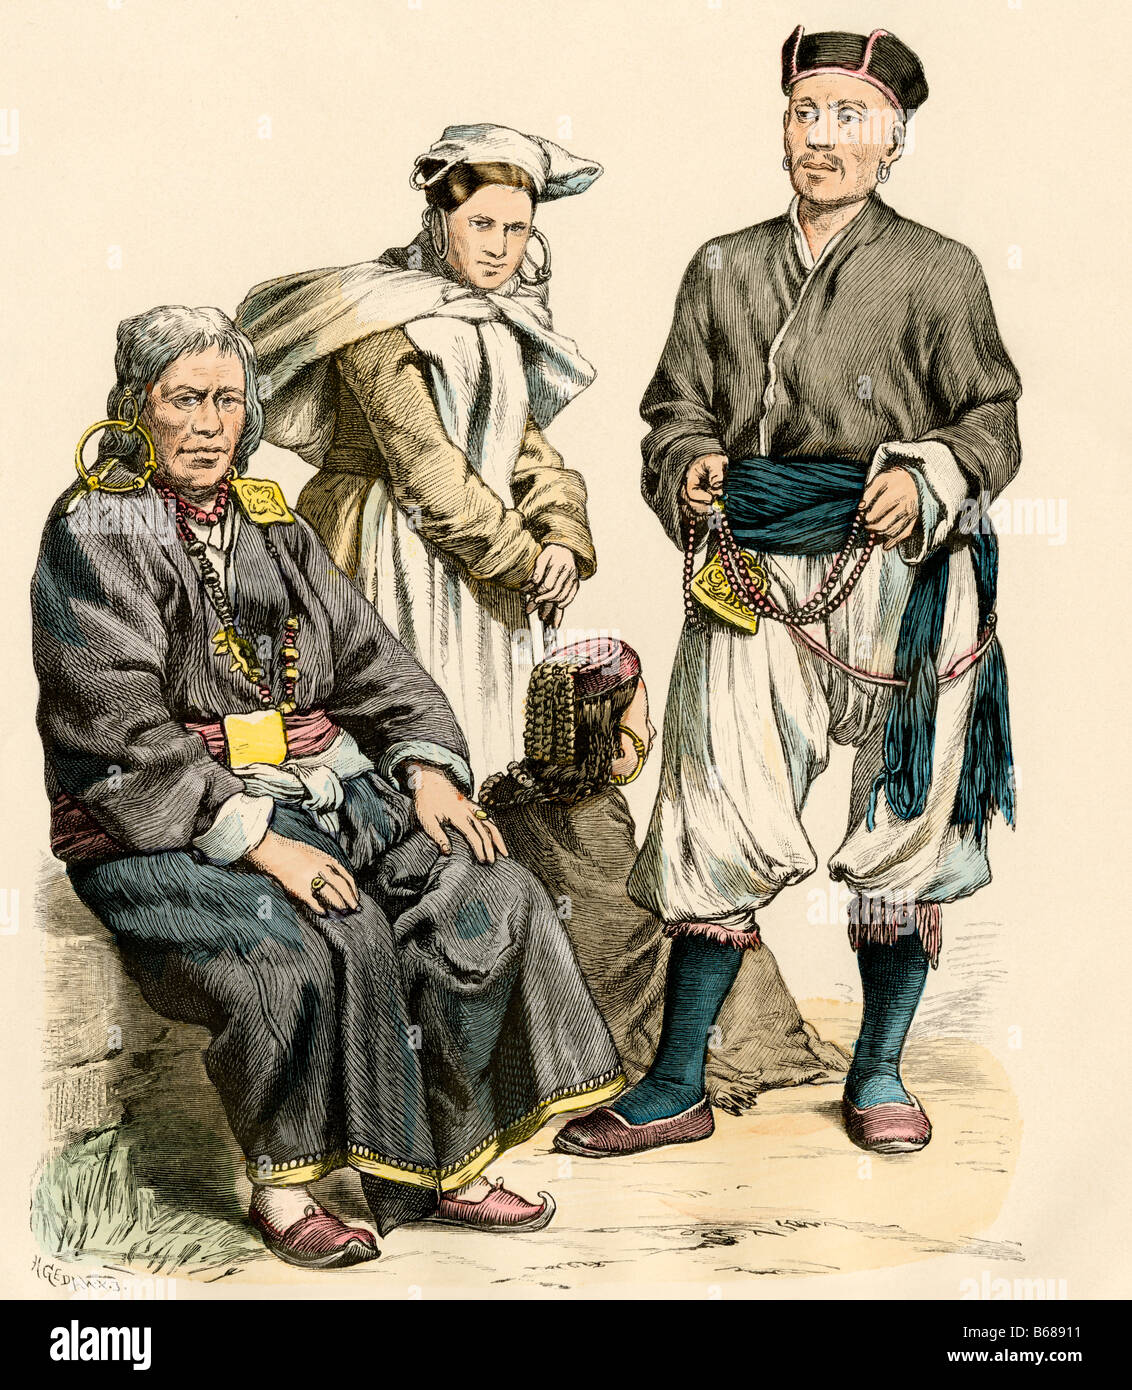 People of Tibet including a lama from Lhasa right in traditional attire. Hand-colored print - Stock Image